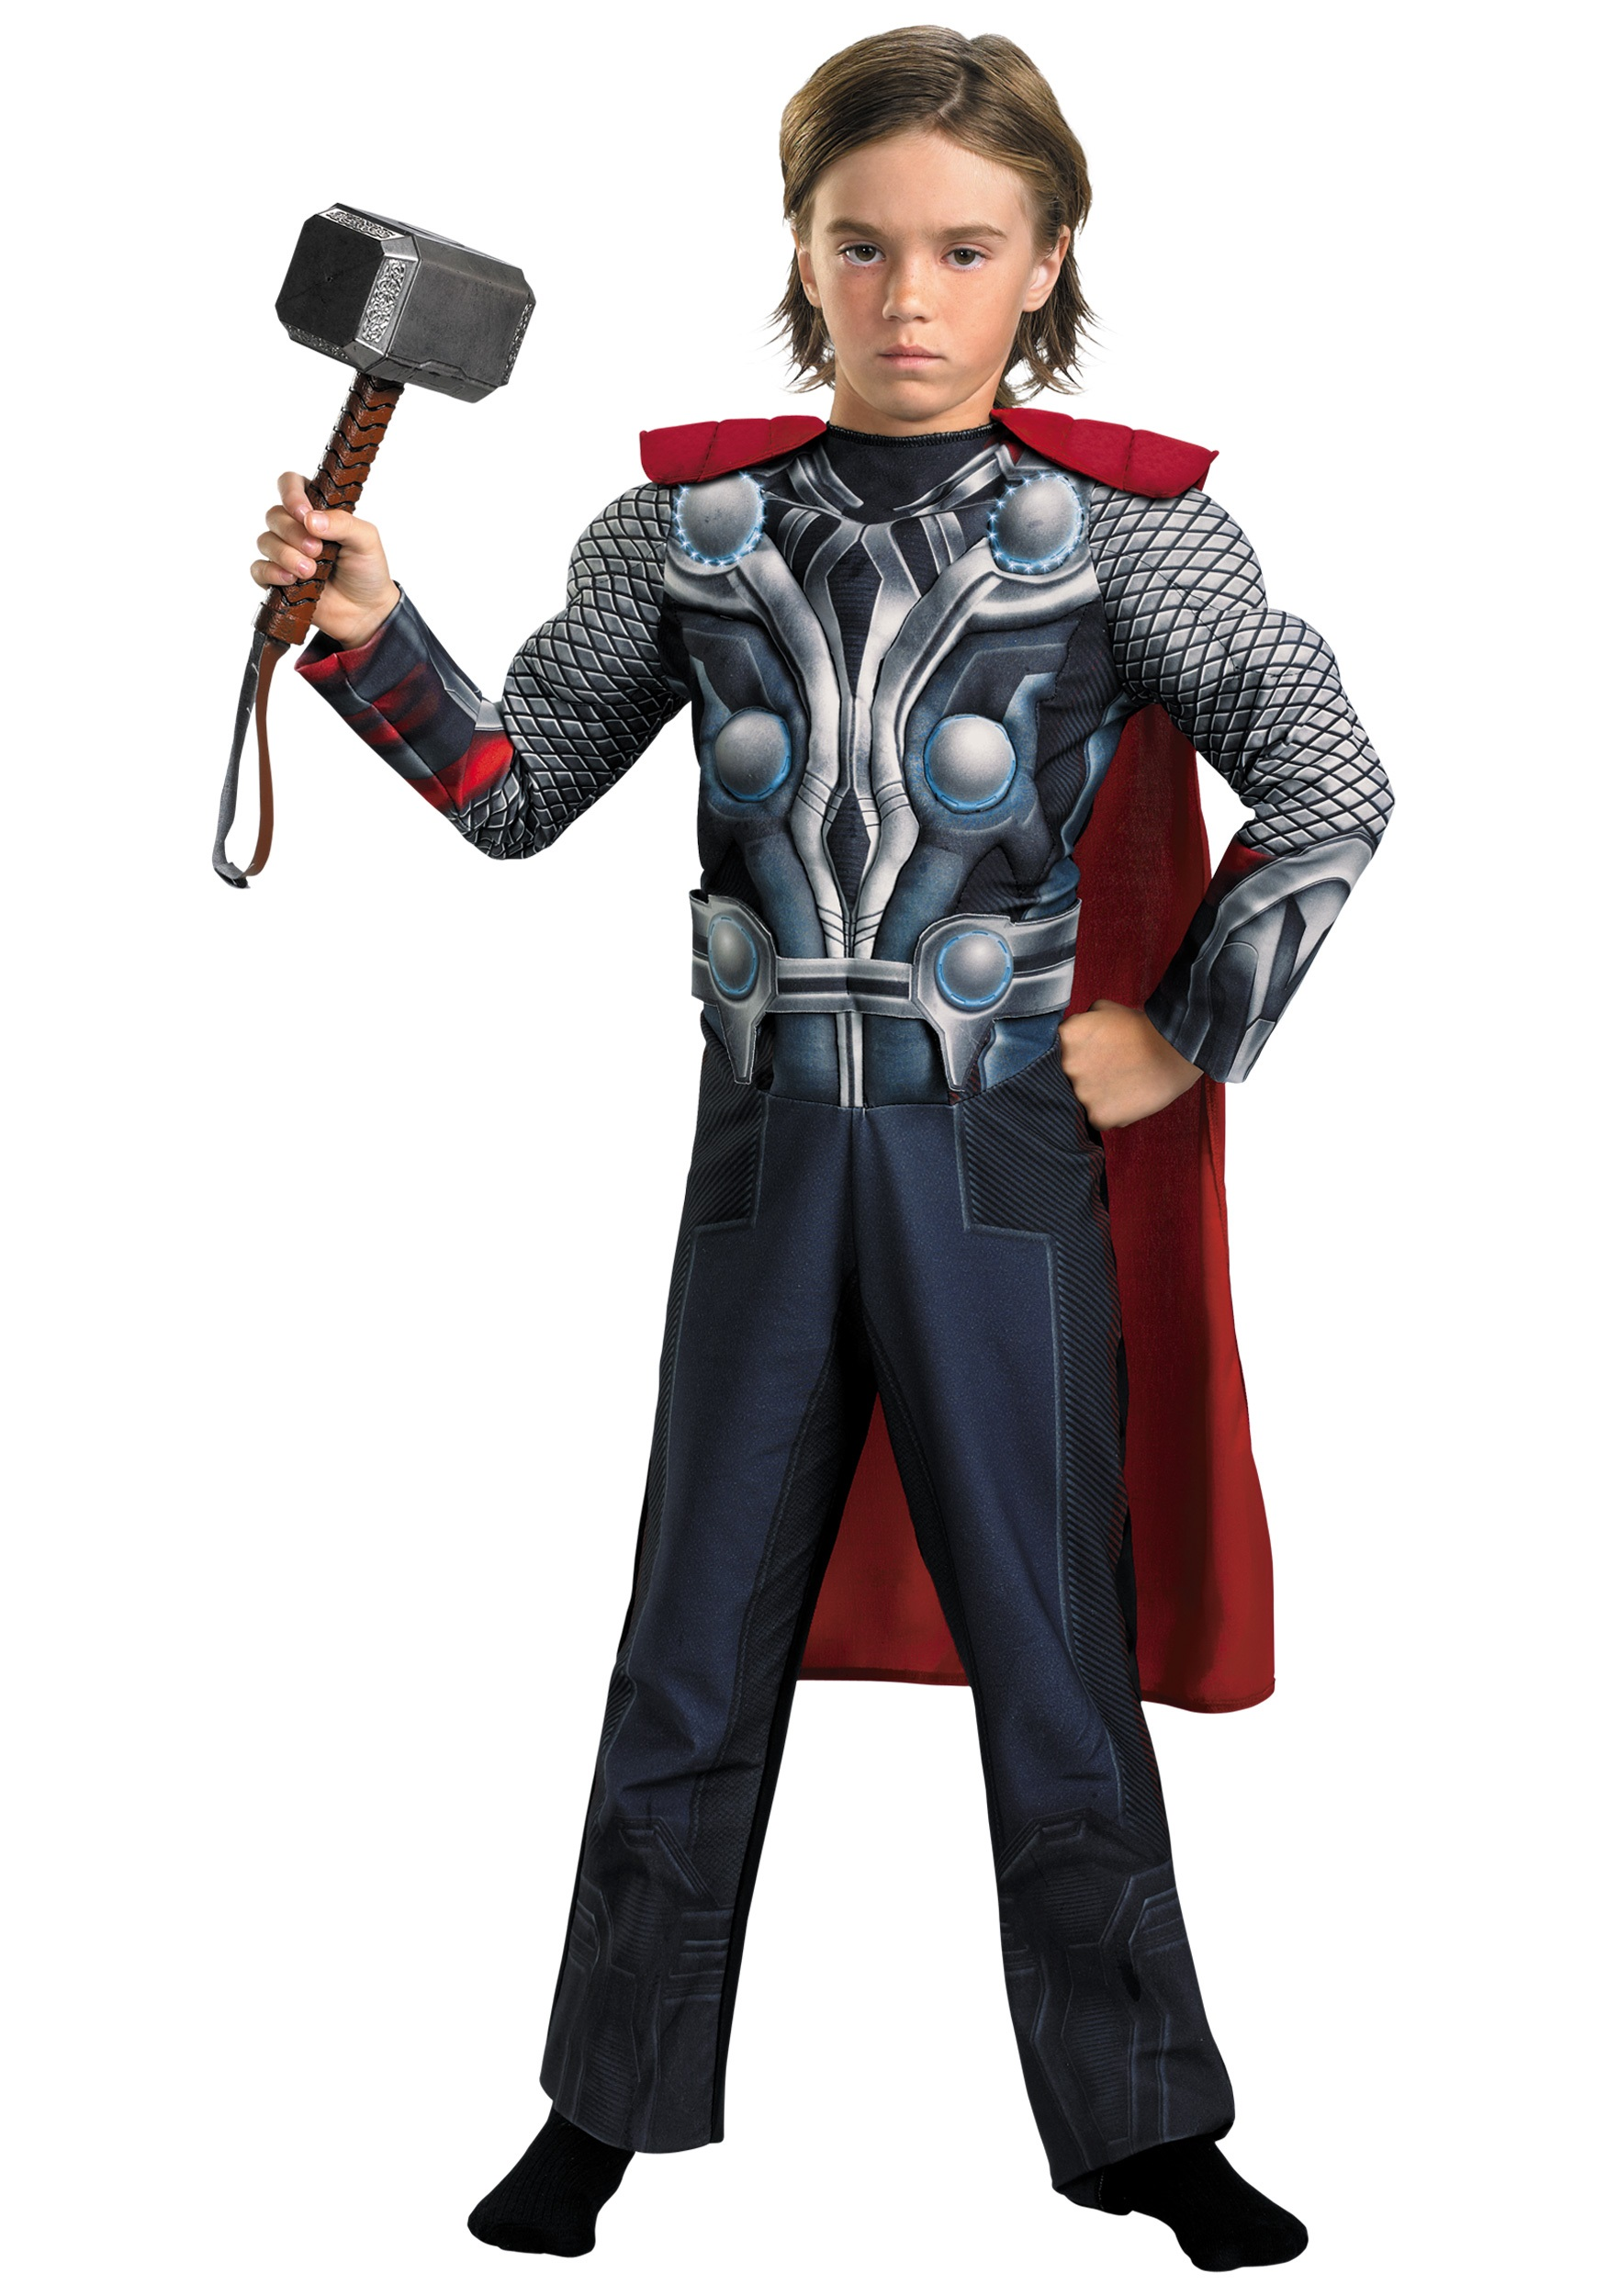 Child Avengers Thor Light-Up Costume  sc 1 st  Halloween Costumes & Child Avengers Thor Light-Up Costume - Halloween Costumes